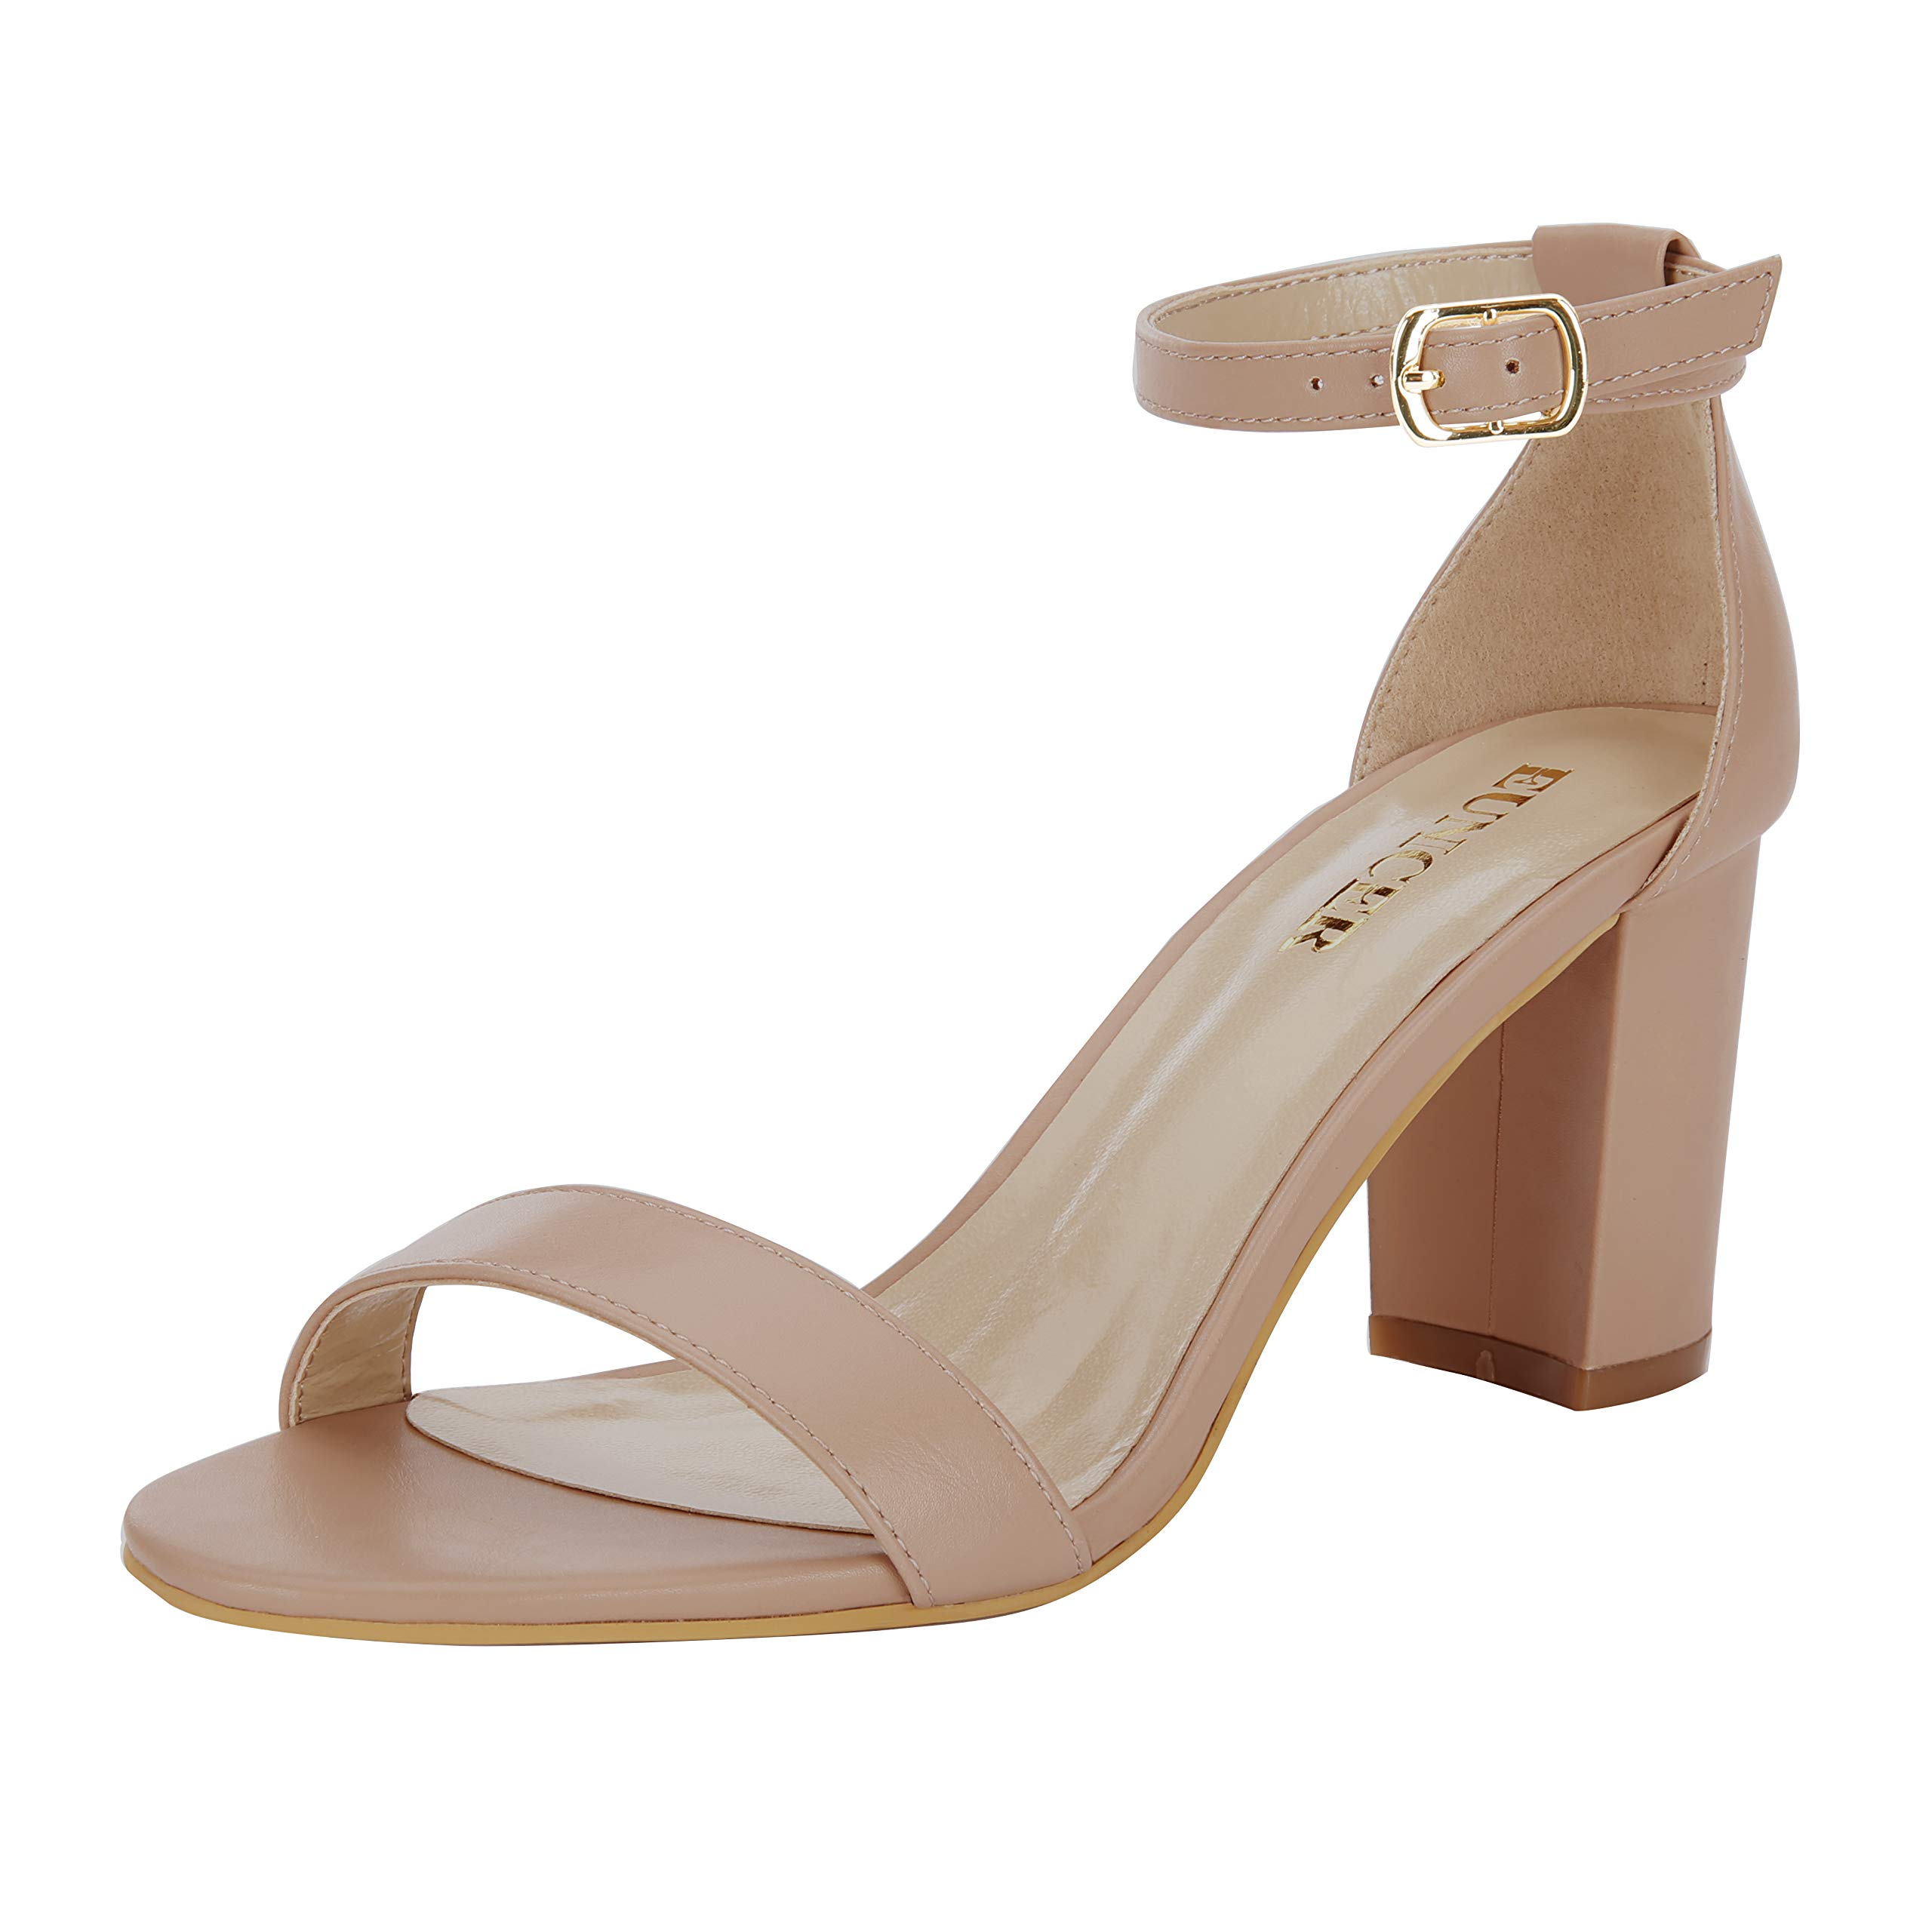 587e46036ec Galleon - Eunicer Women s Single Band Classic Chunky Block High Heel Sandals  With Ankle Strap Dress Shoes (Nude)